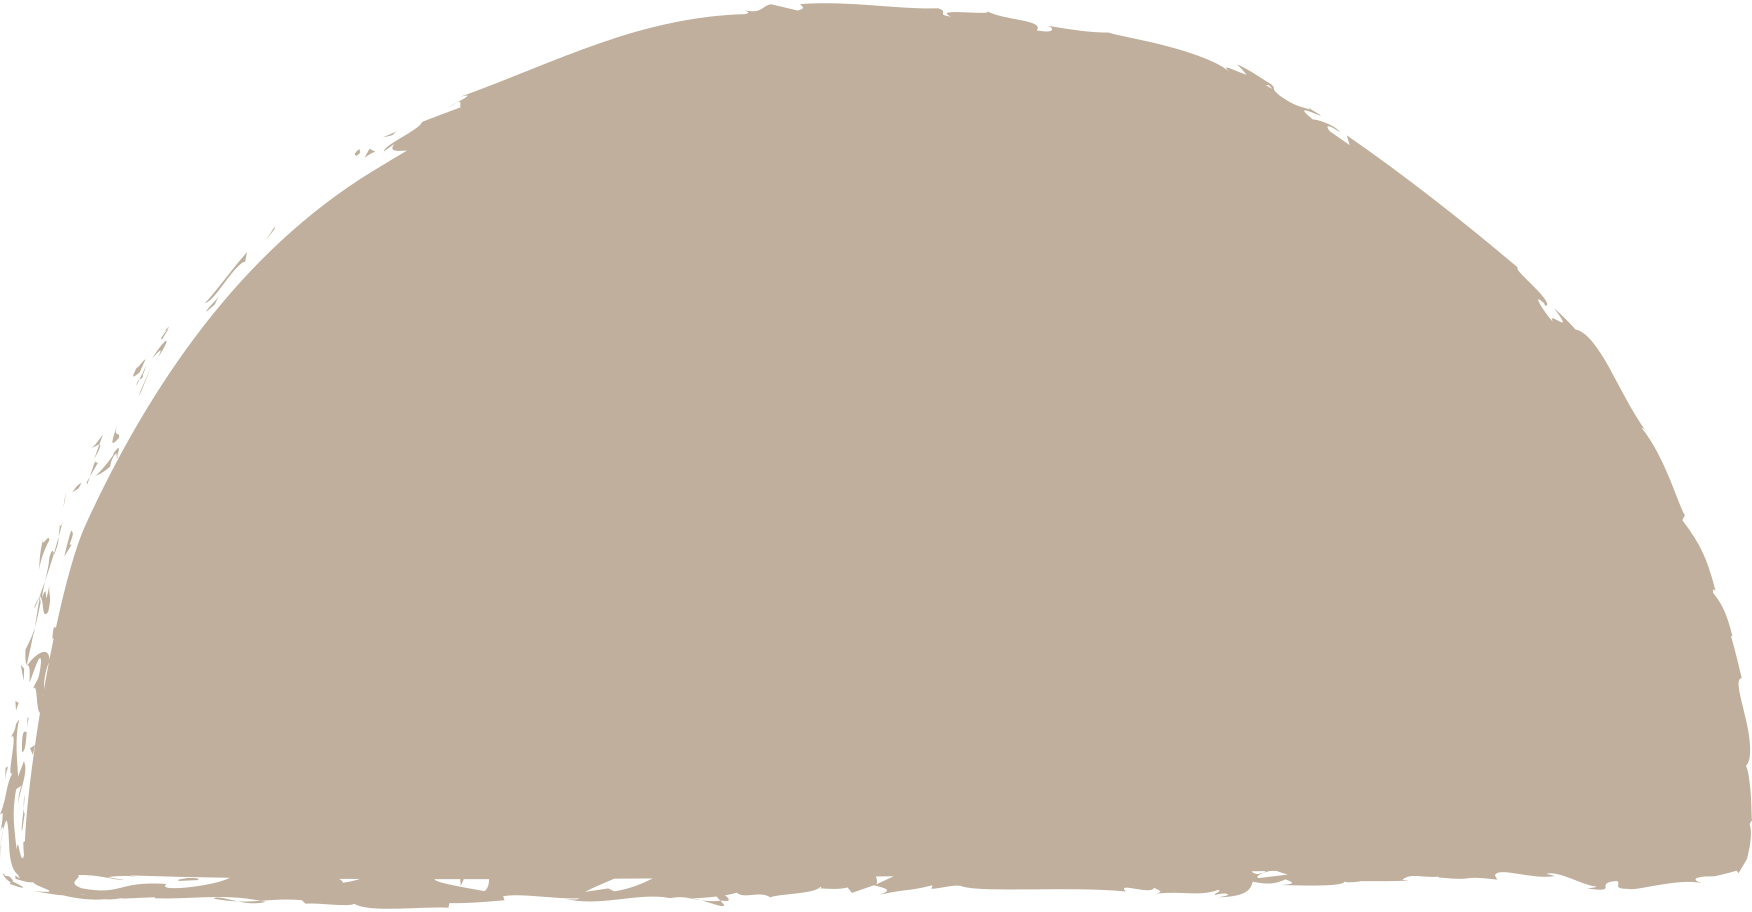 semicircle-light-grey Clipart illustration in PNG, SVG